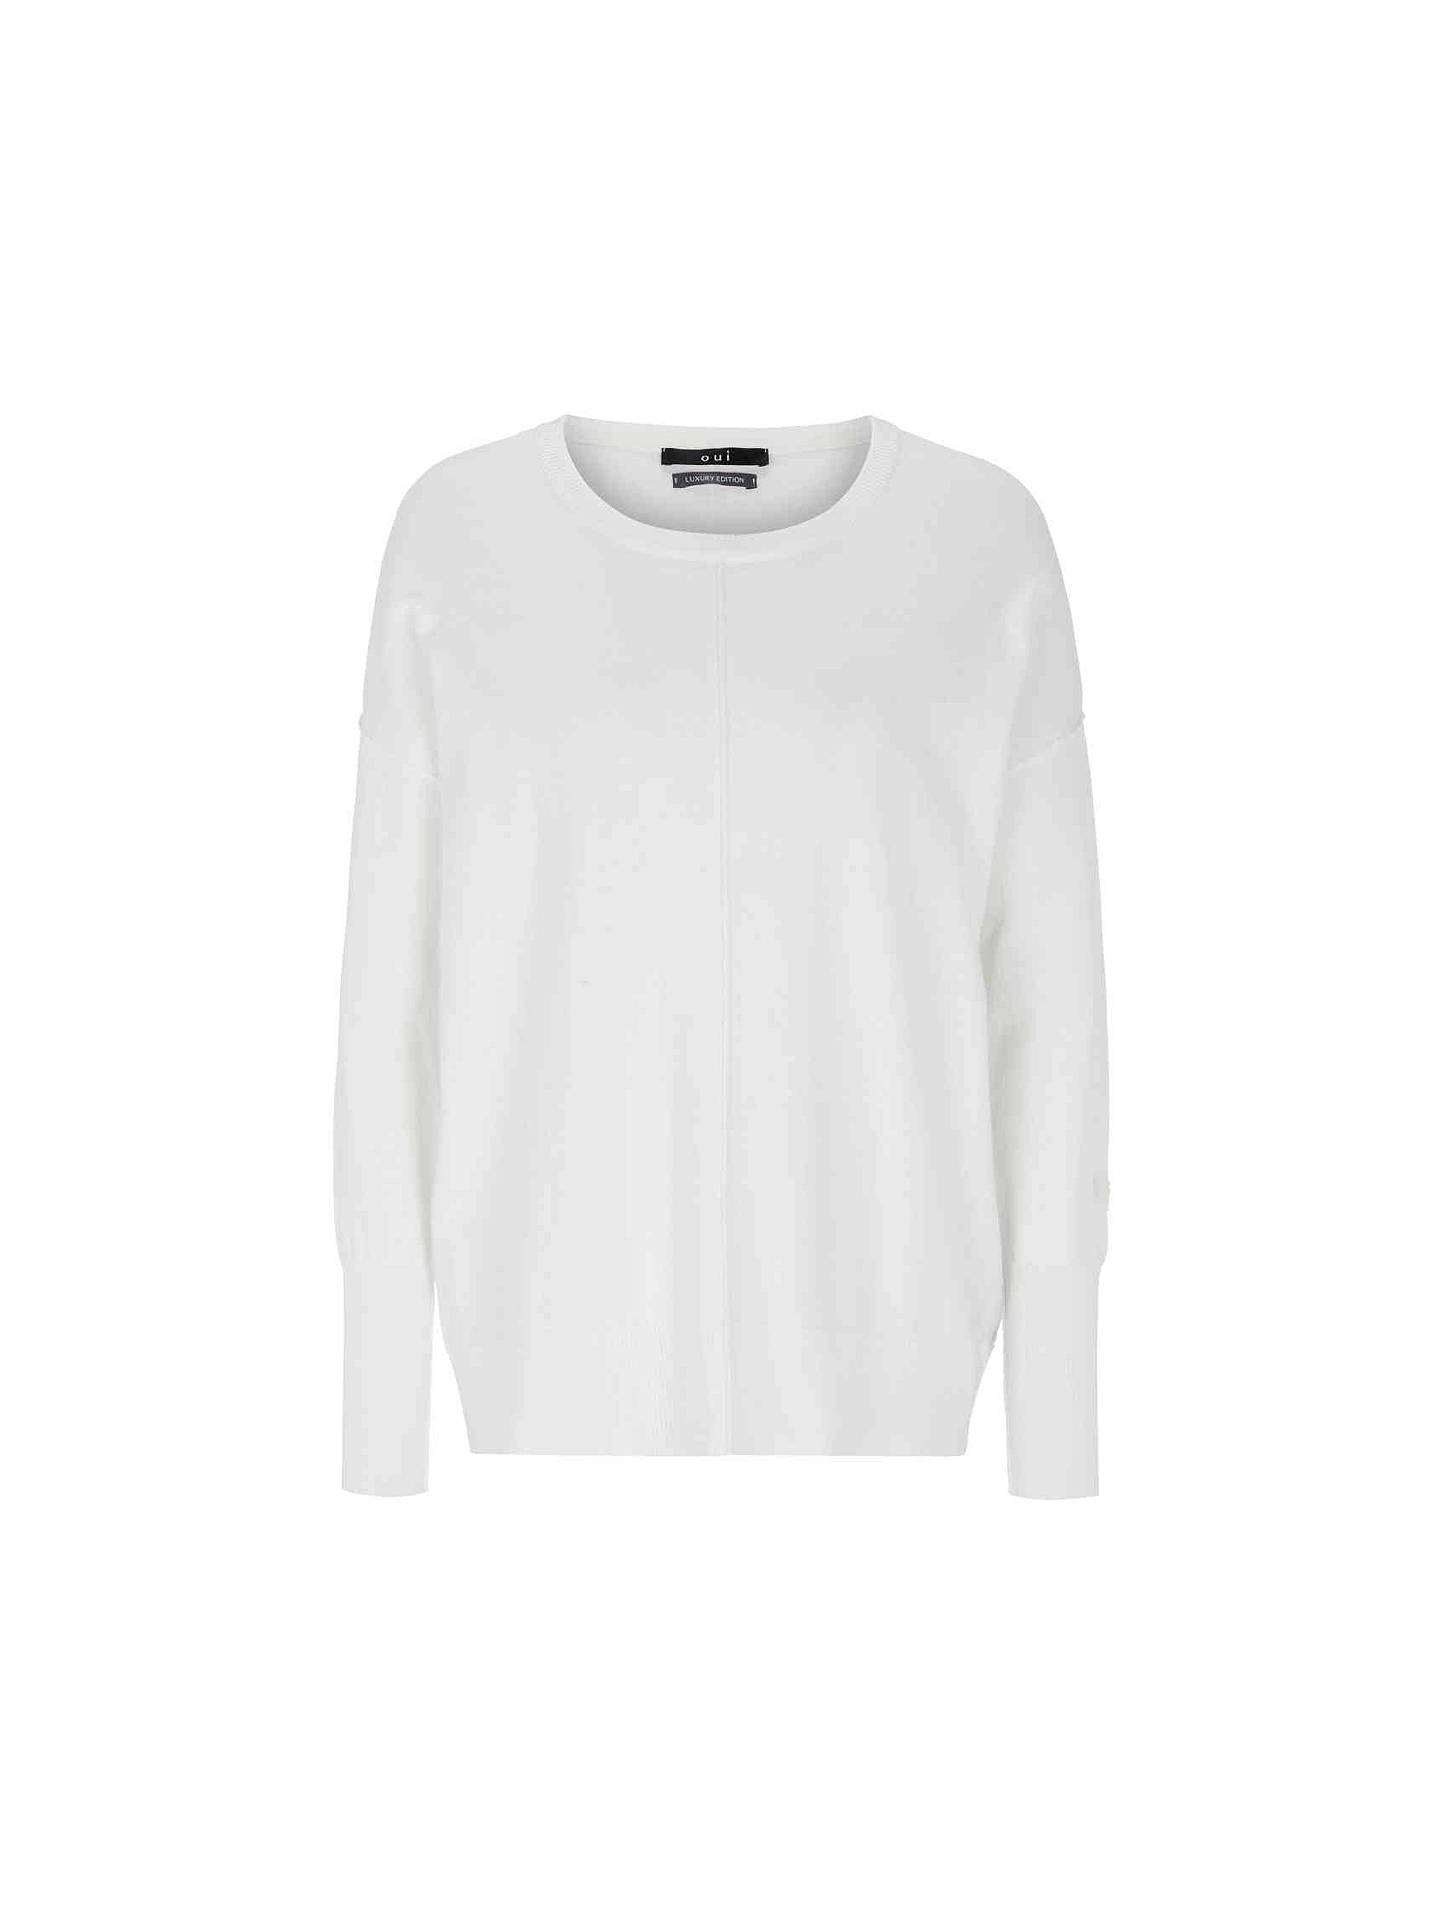 da5bad34de4204 Buy Oui Boxy Knit Jumper, White, 8 Online at johnlewis.com ...